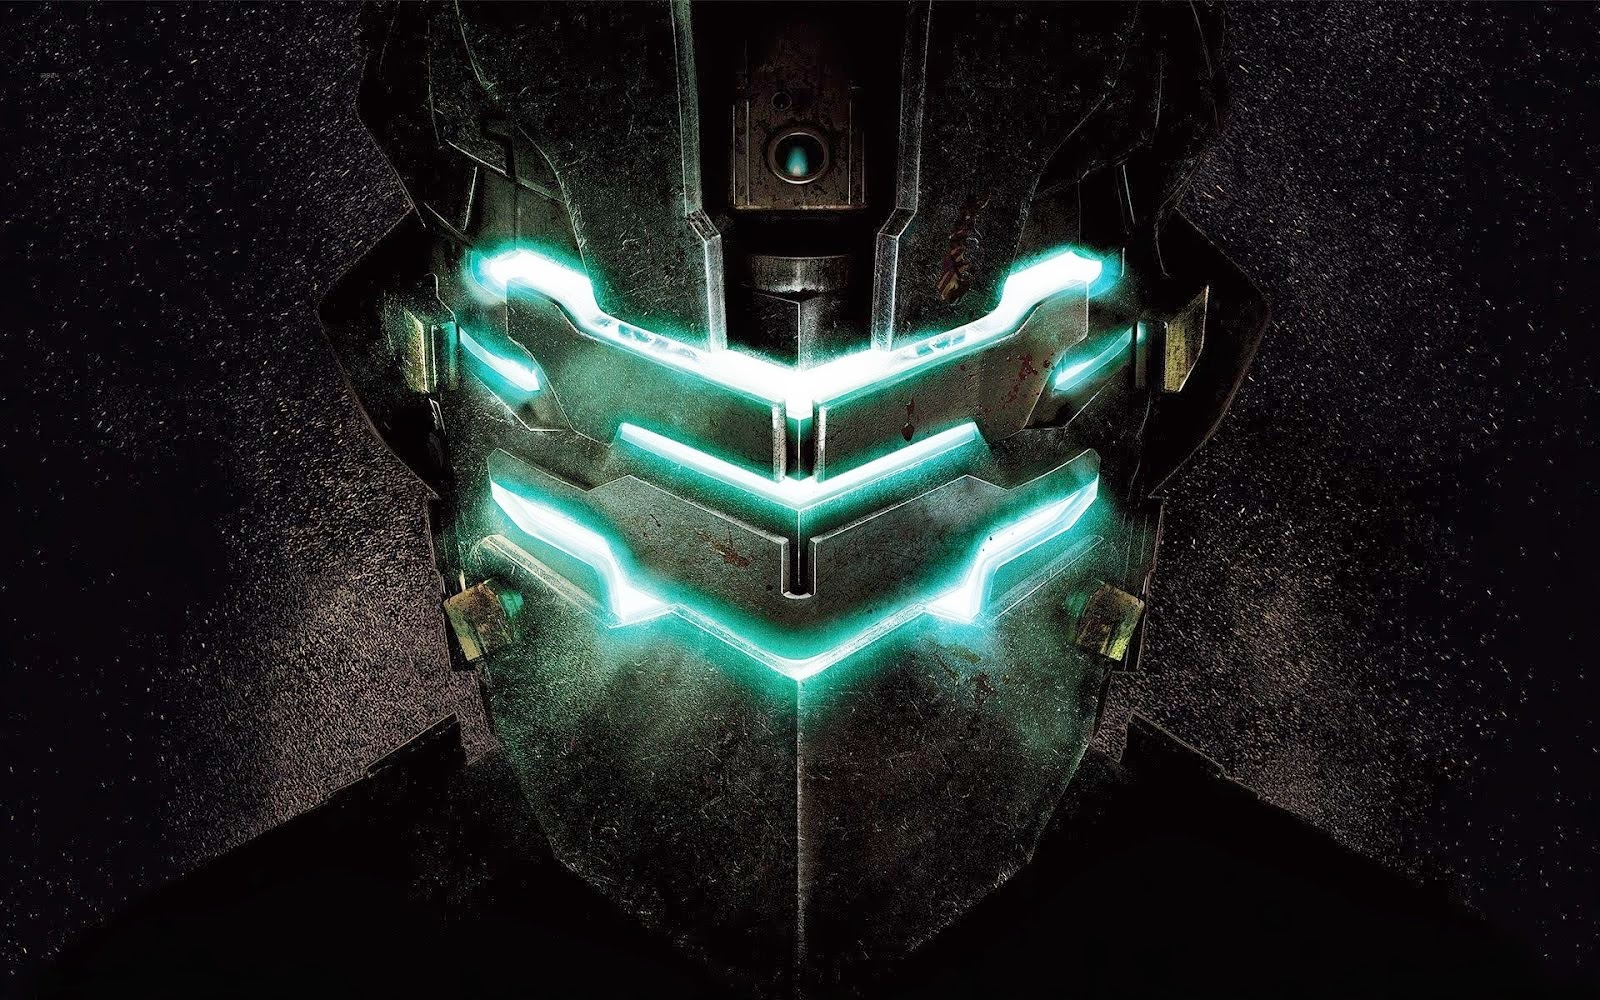 Dead Space 2 Wallpaper Space Wallpaper 1600x1000